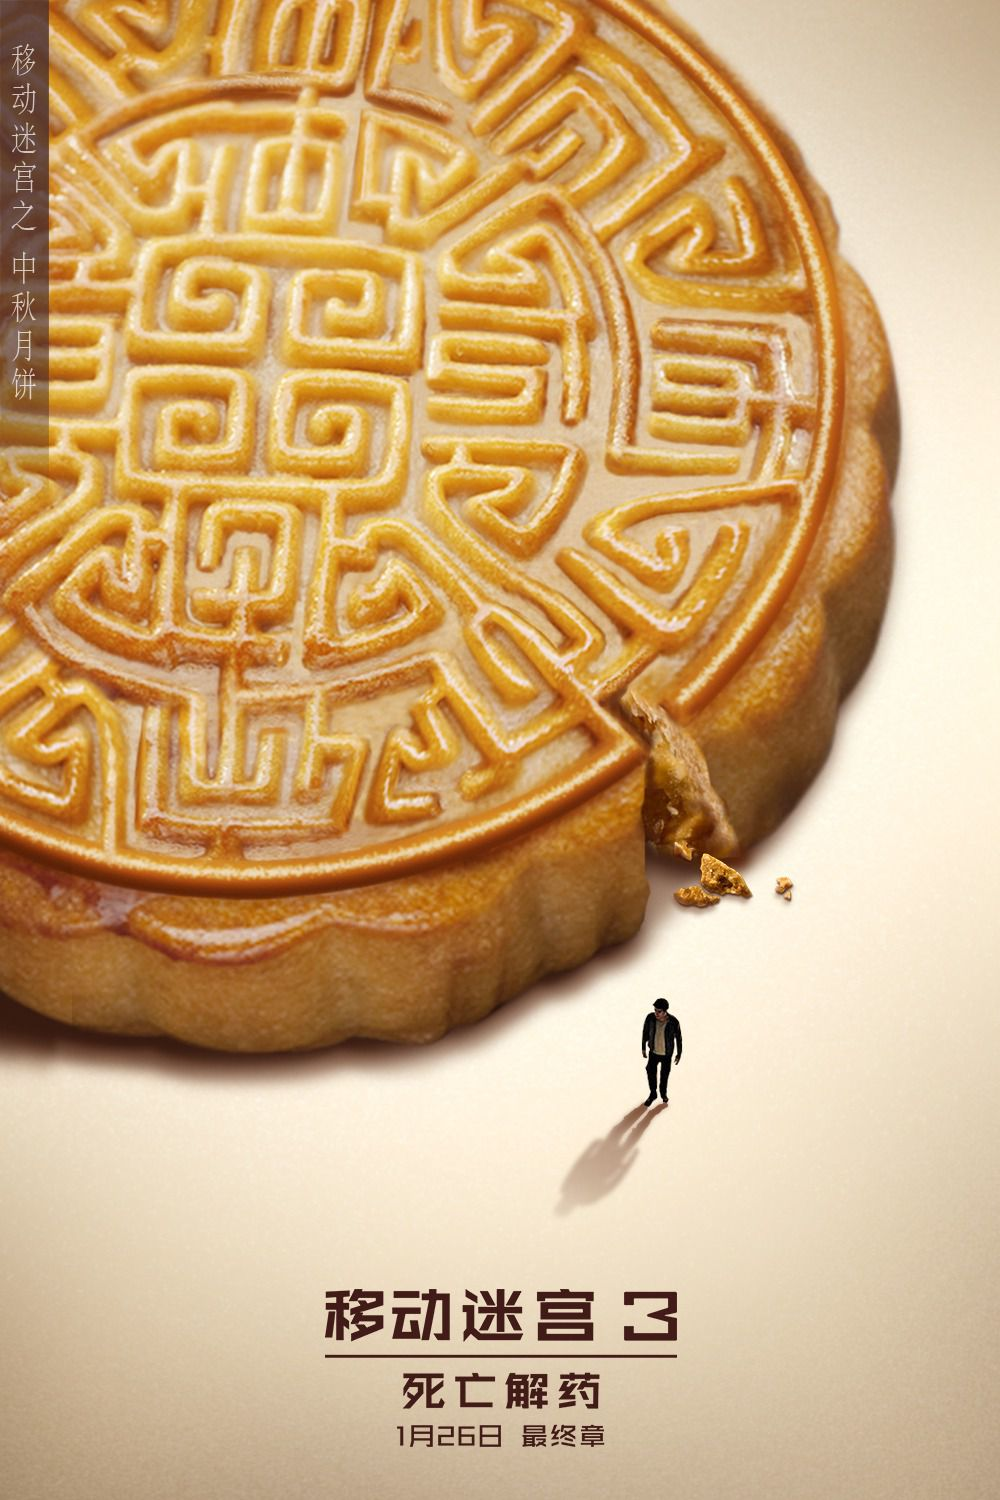 Maze Runner the Death Cure - biscuit poster 2018 biscotto